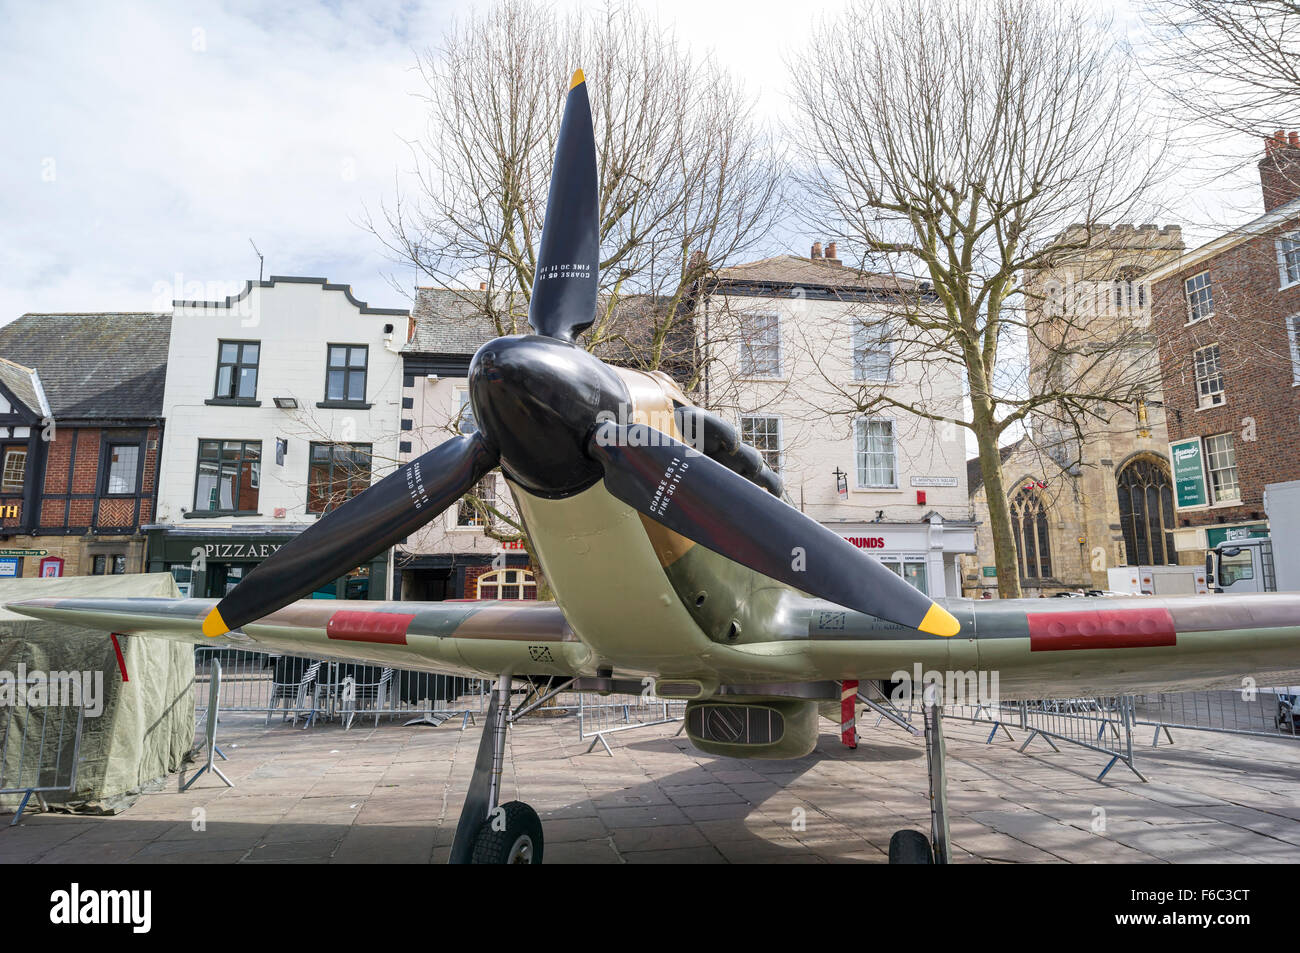 York City Hurricane Fighter From WW2 in Square in York 2013 - Stock Image